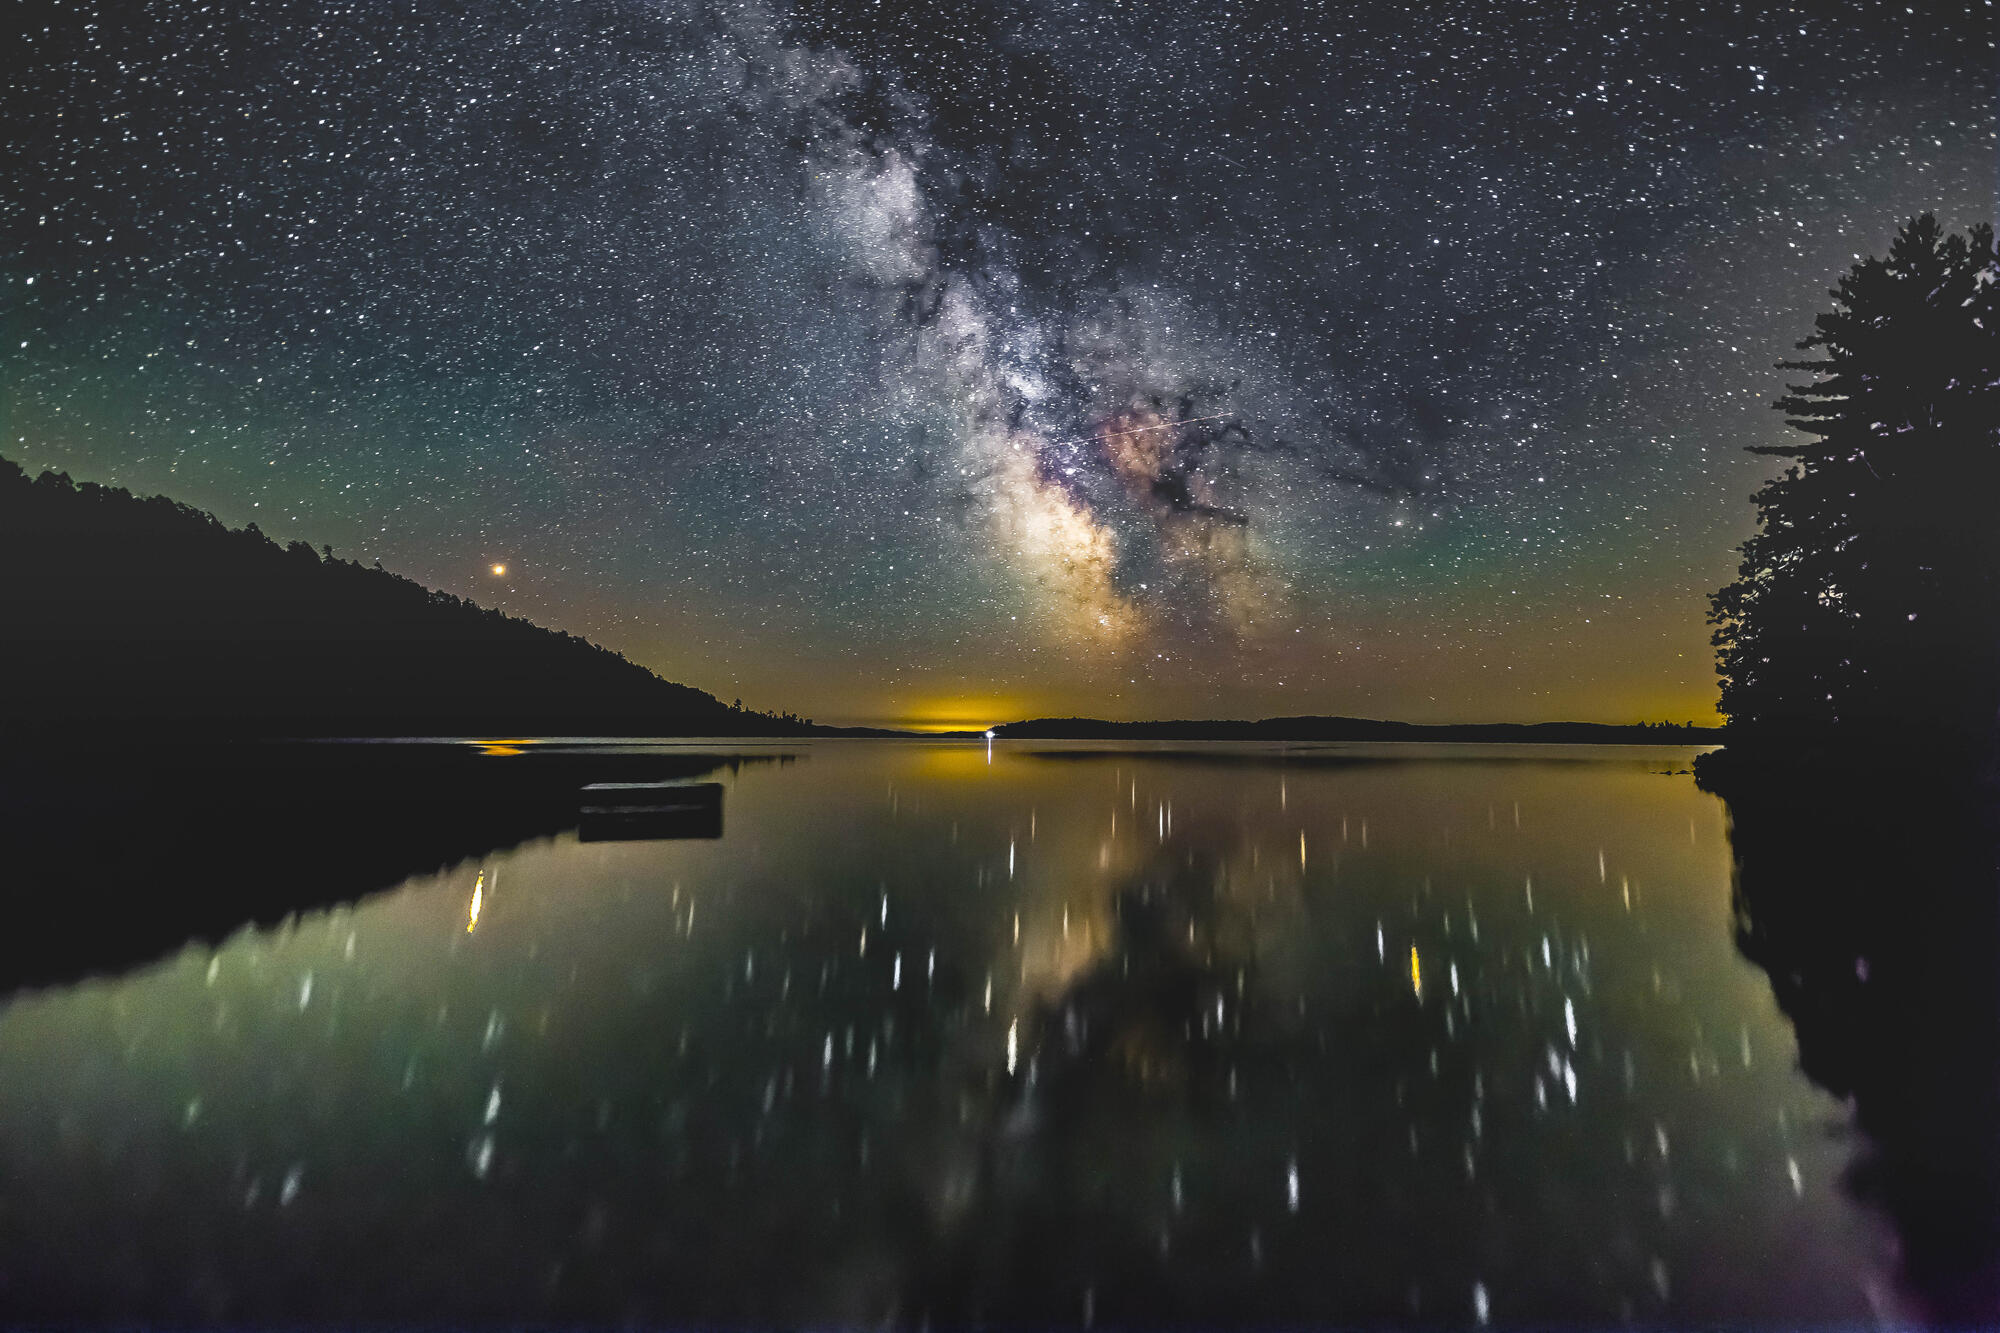 Temagami Astrophotographer Takes Amazing Shots Of The